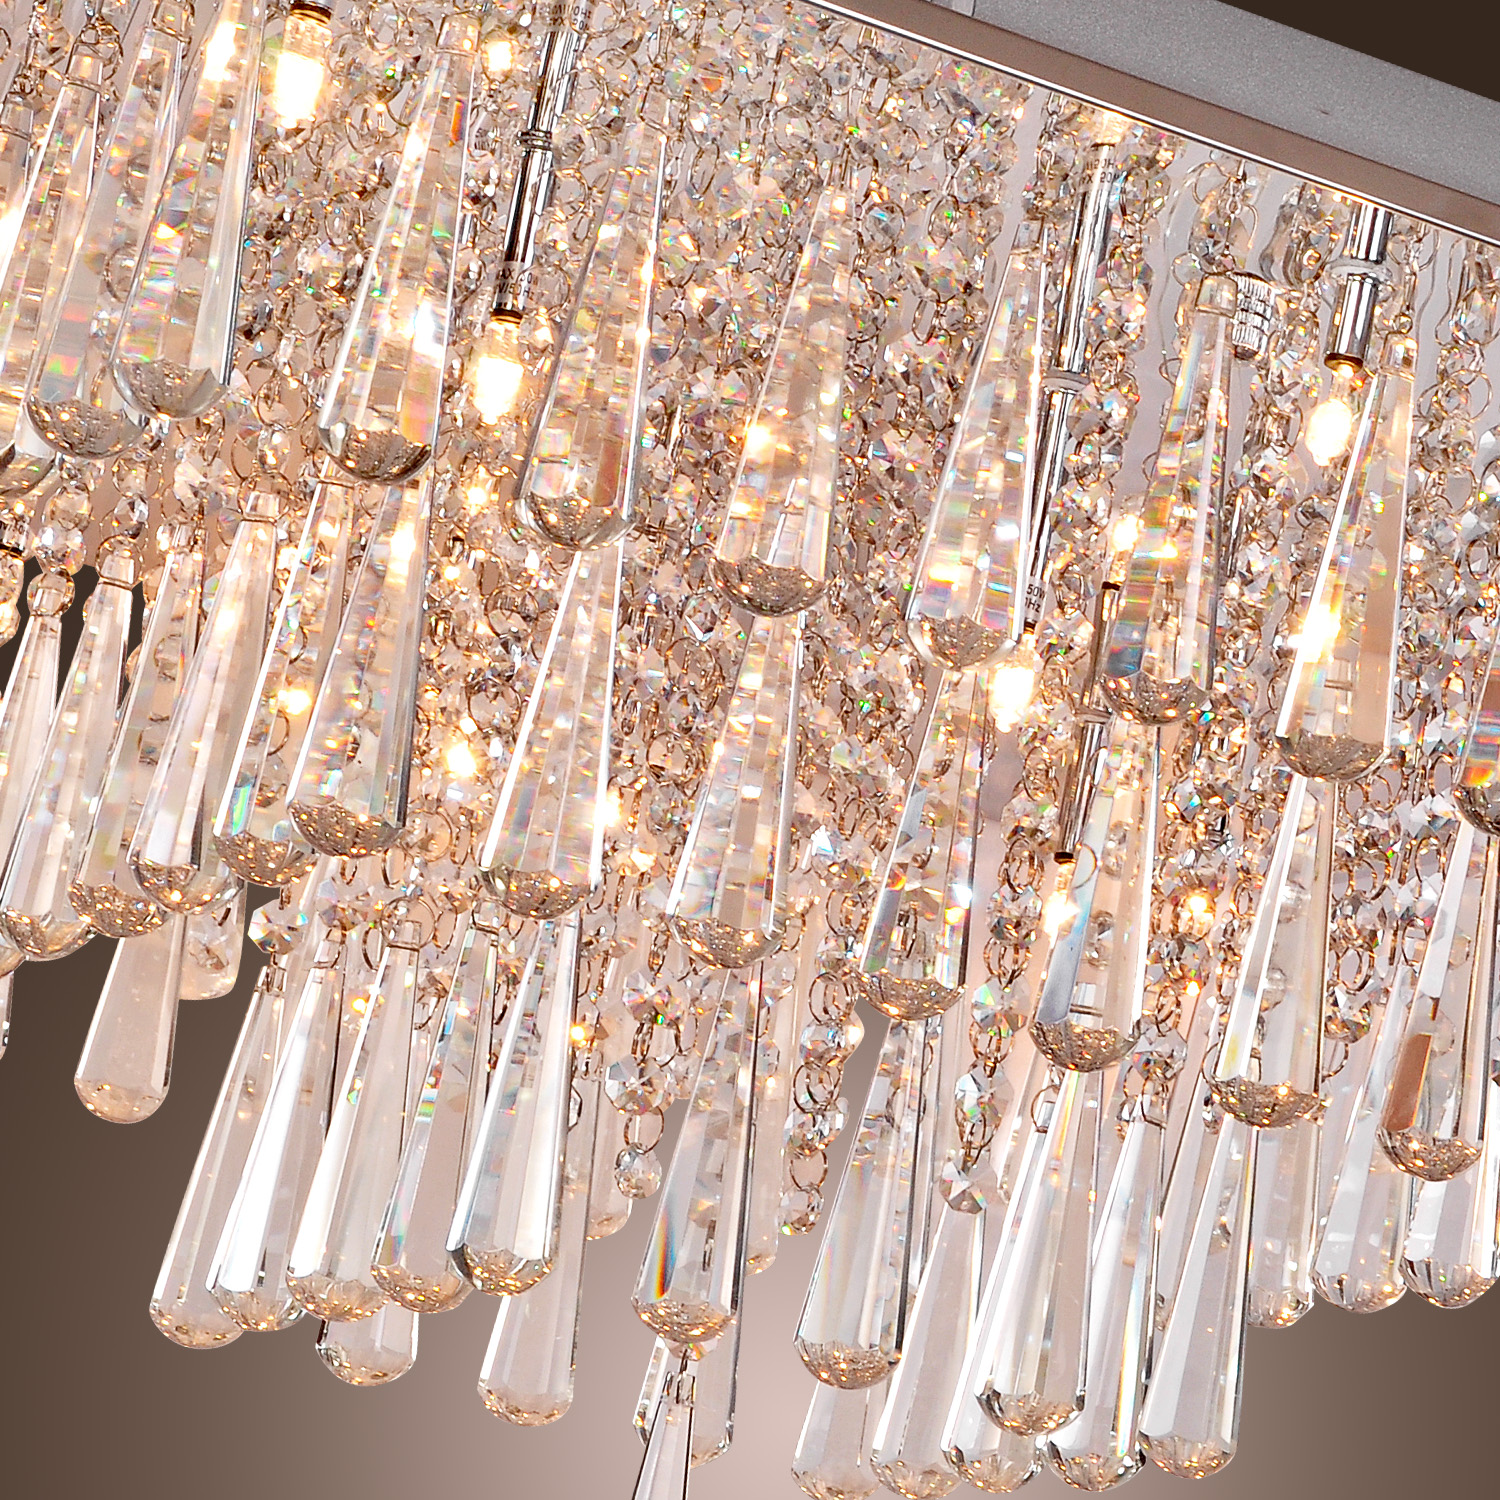 crystal flush mount chandelier. Flush Mount Lamp Living Room Bedroom Crystal Chandelier Modern Ceiling Light | EBay